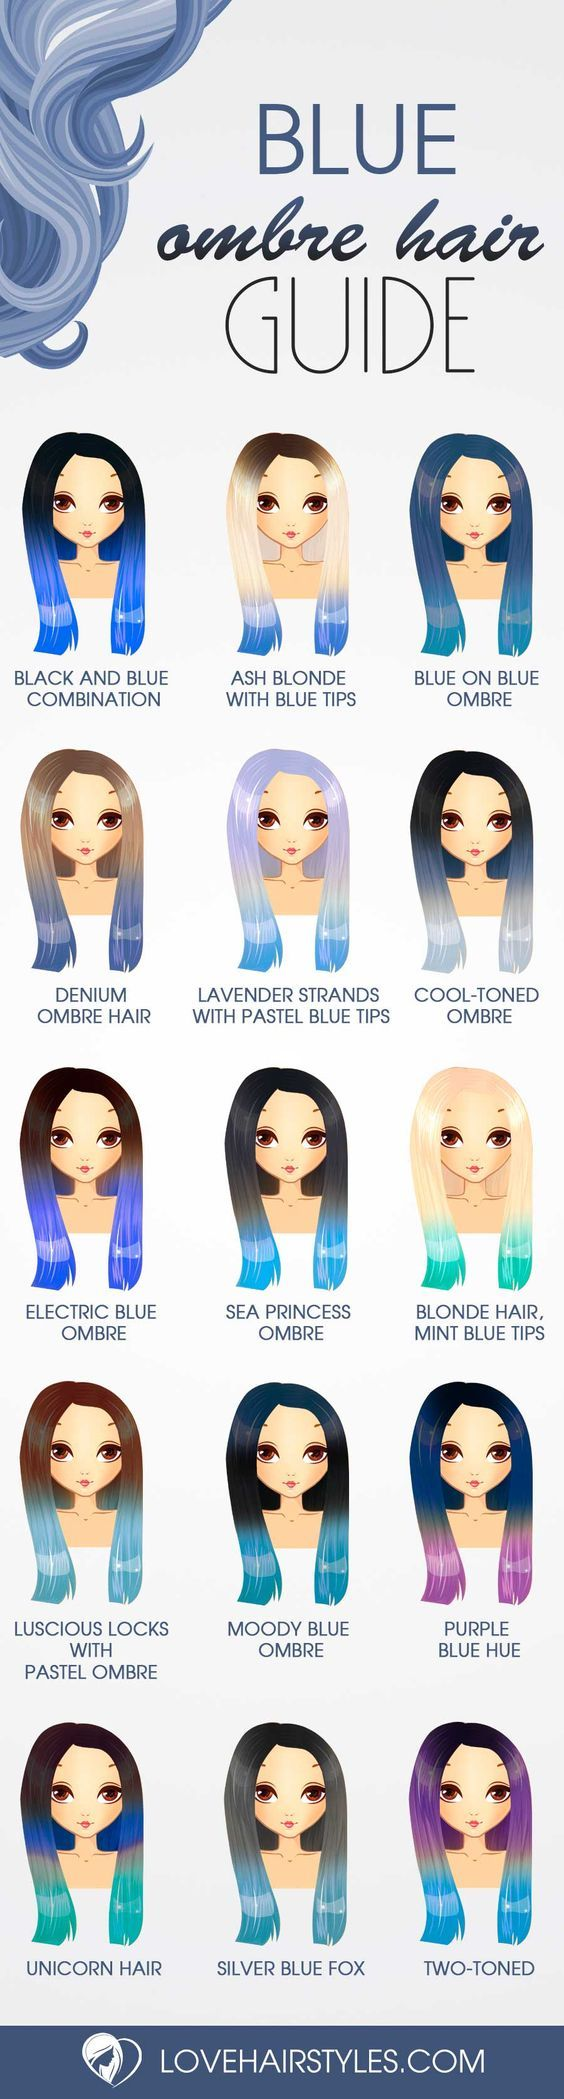 30 Trendy Styles For Blue Ombre Hair #ombrehair